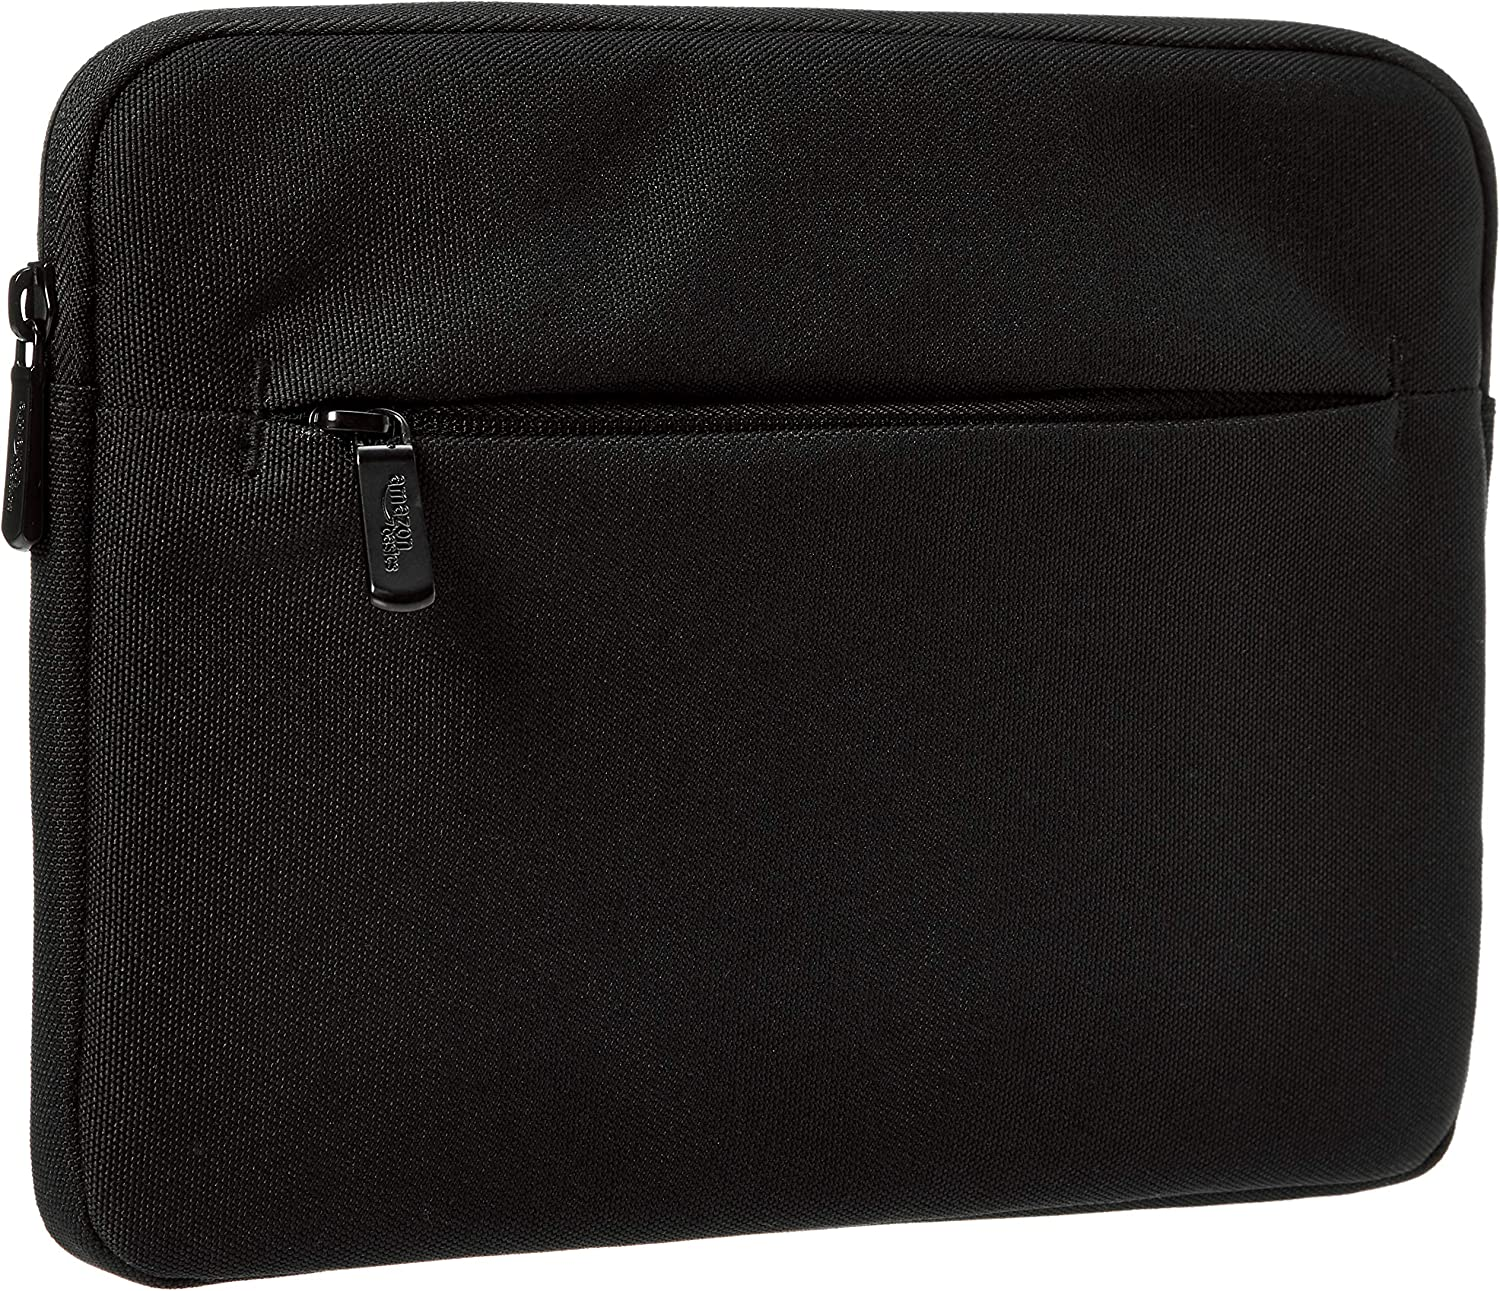 "AmazonBasics Tablet Sleeve with Front Pocket, 10"", Black"